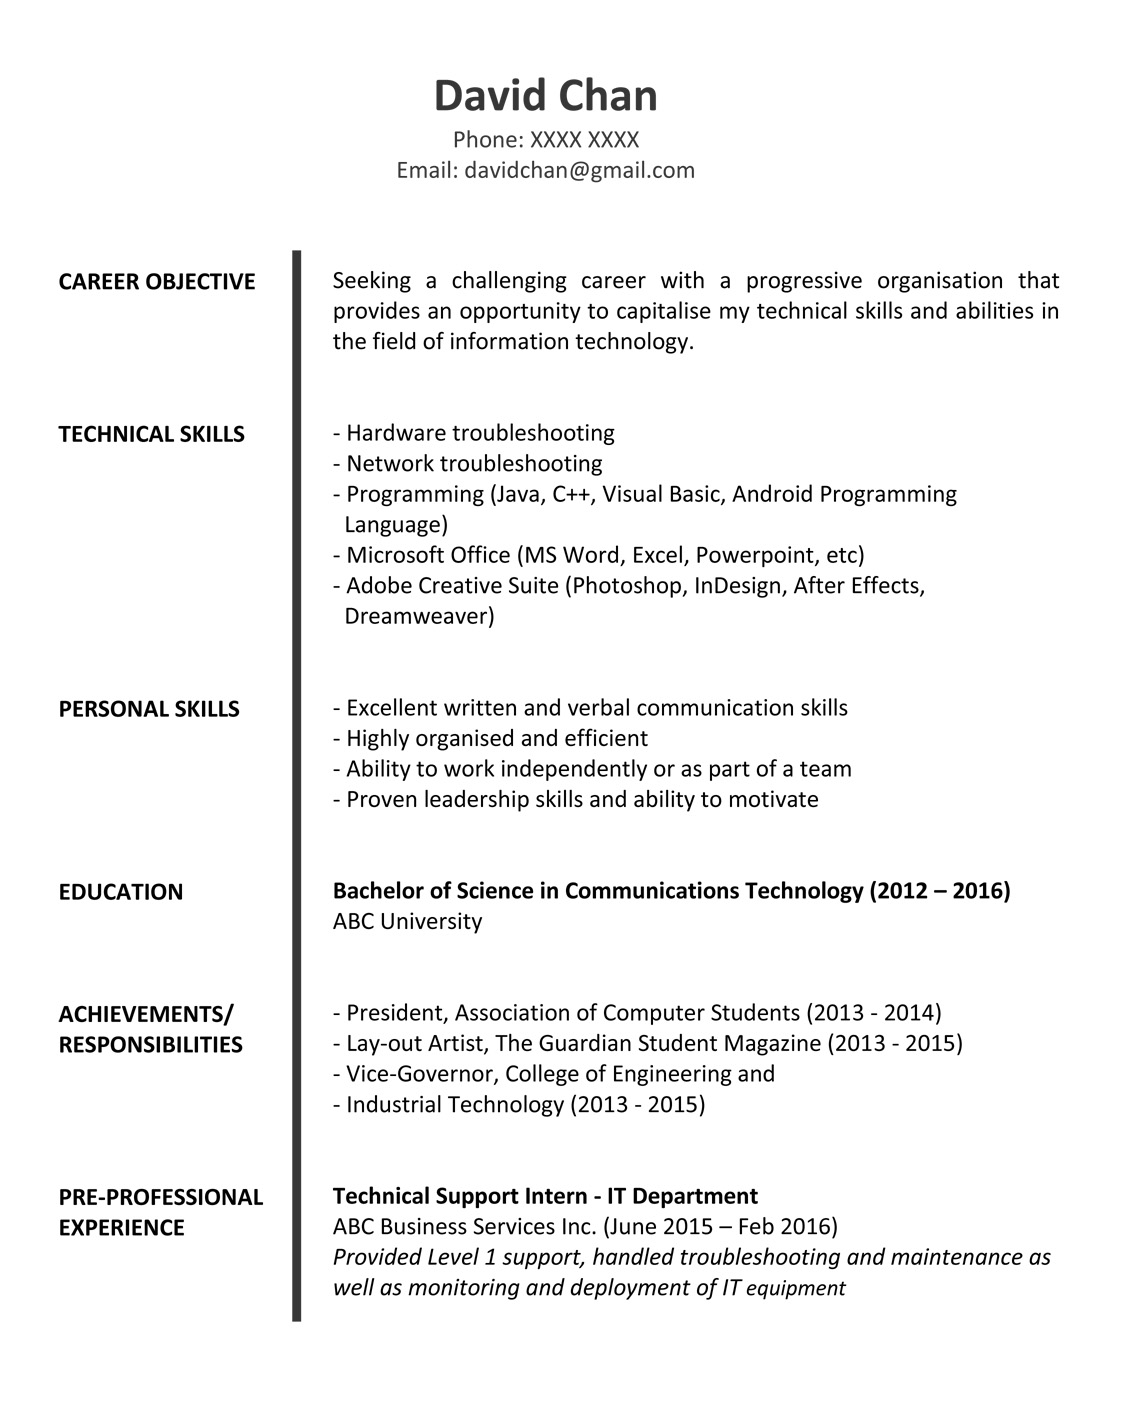 contos dunne communications application letter of fresh graduate best resume for fg 1p Resume Best Resume For Fresh Graduate